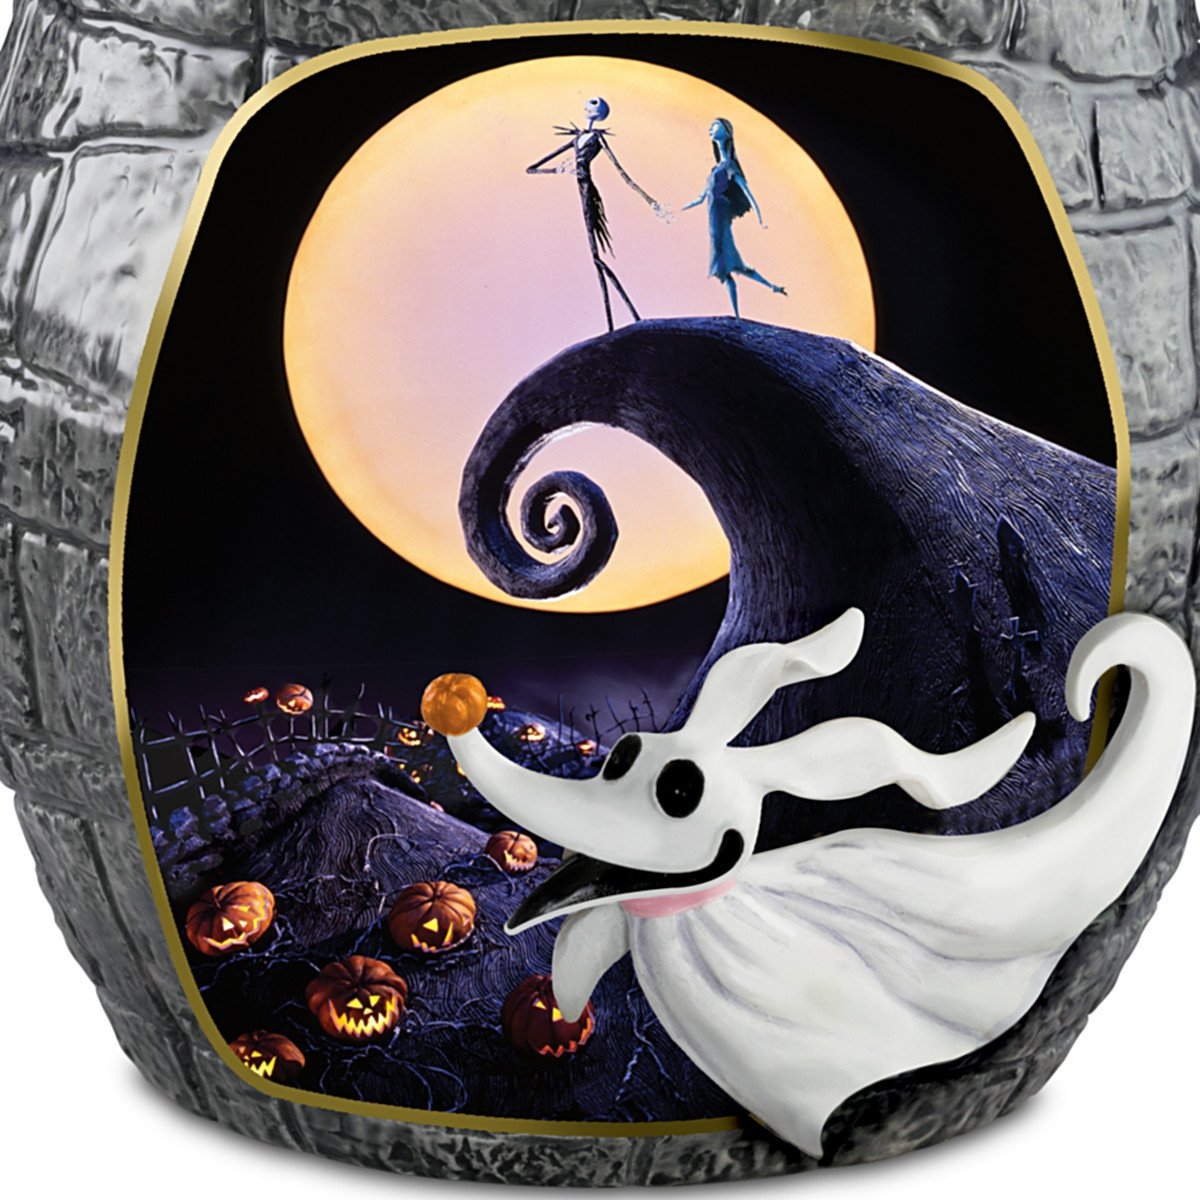 Amazon.com: The Nightmare Before Christmas Cookie Jar With Jack ...